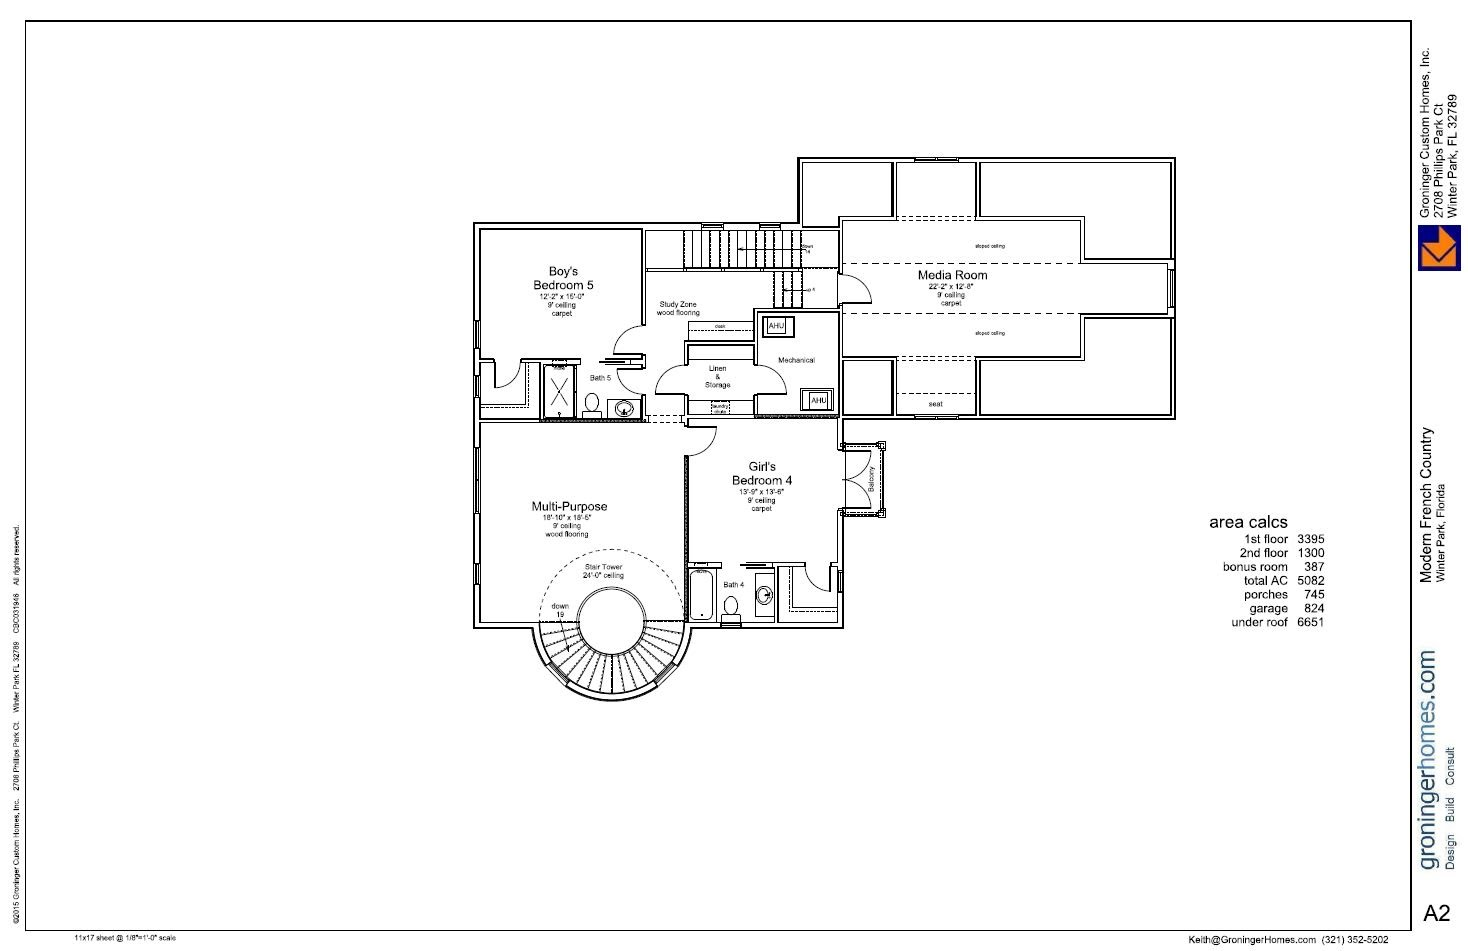 https://sites.google.com/a/groningerhomes.com/gch/information/homes/modern-french/Tran%20floorplan2.JPG?attredirects=0